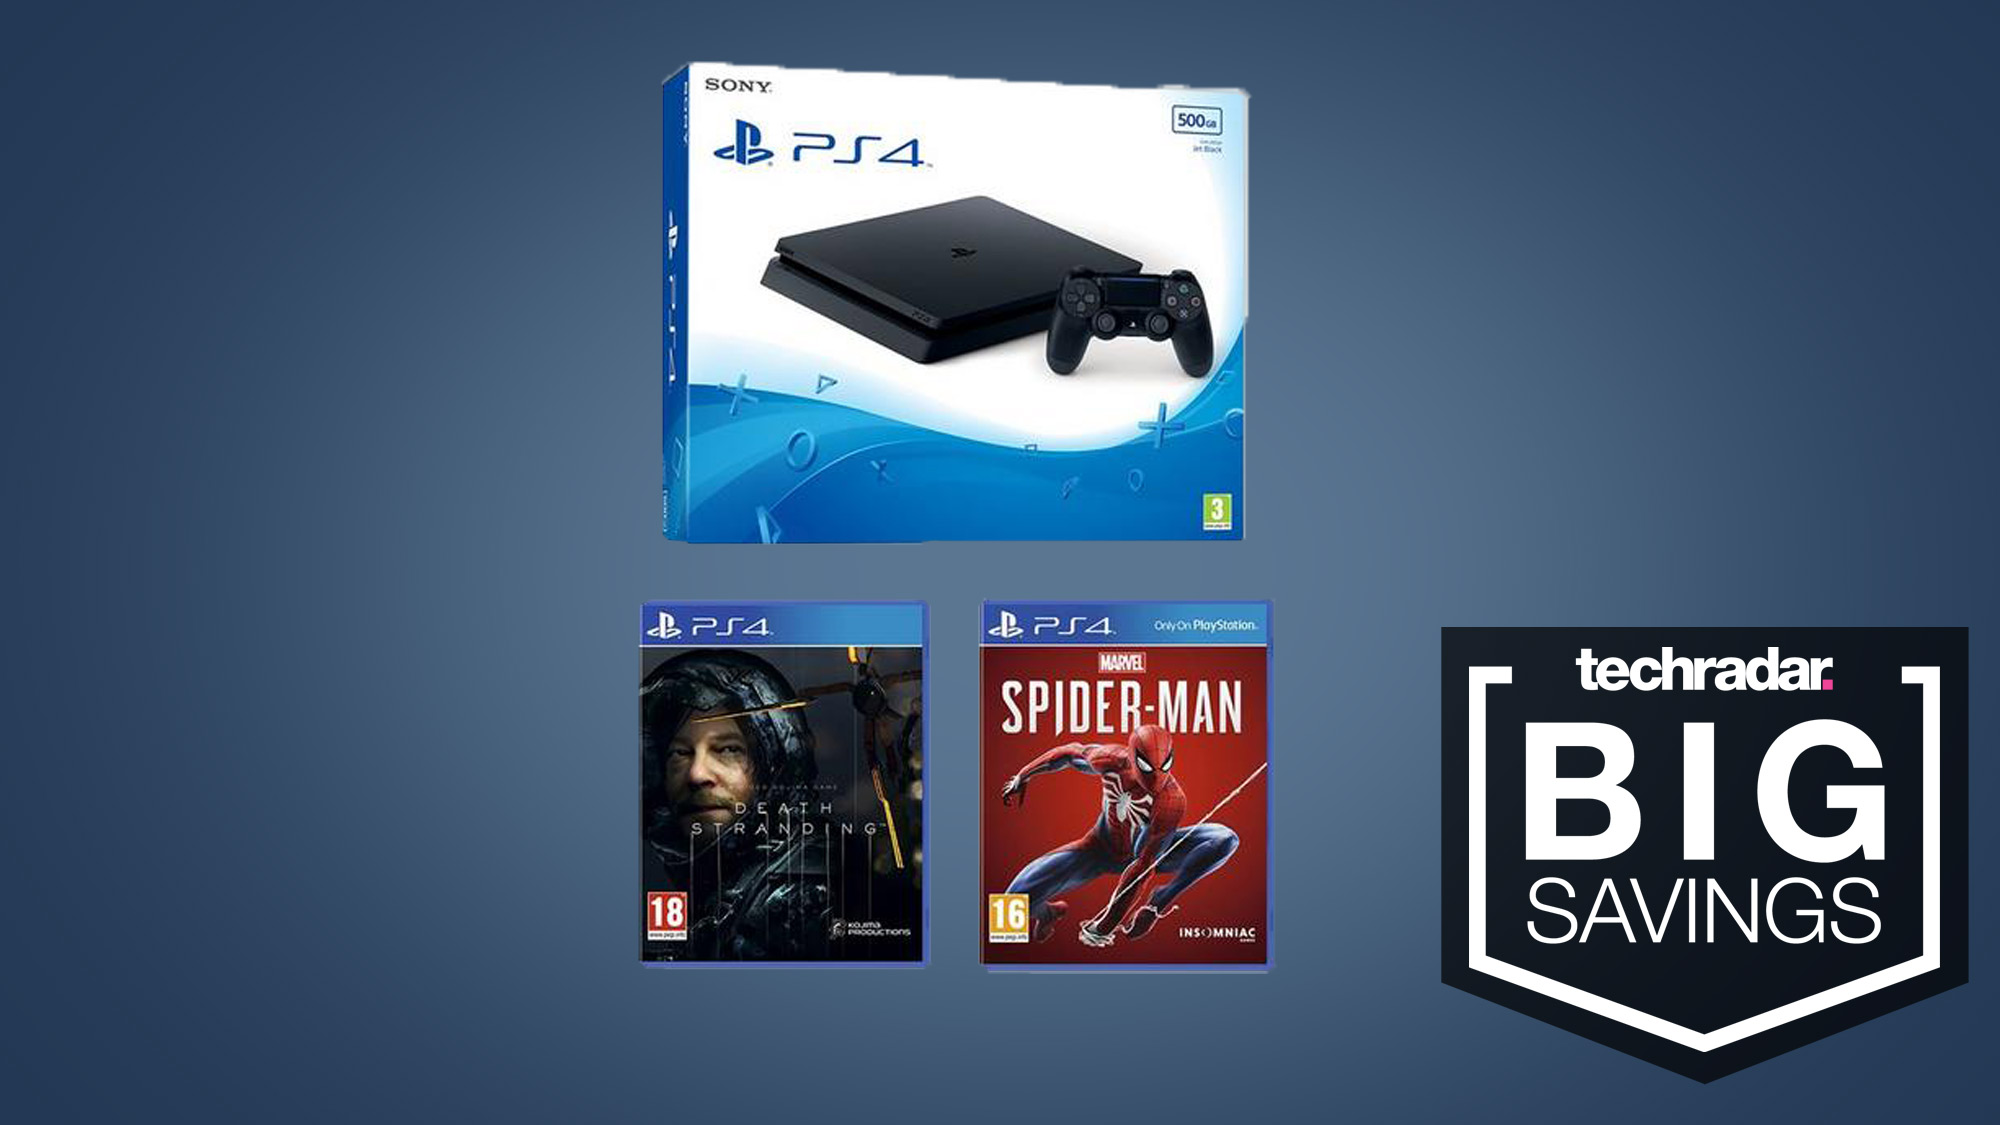 Pick up a PS4 with Death Stranding and Spider-Man for only £200 this Black Friday